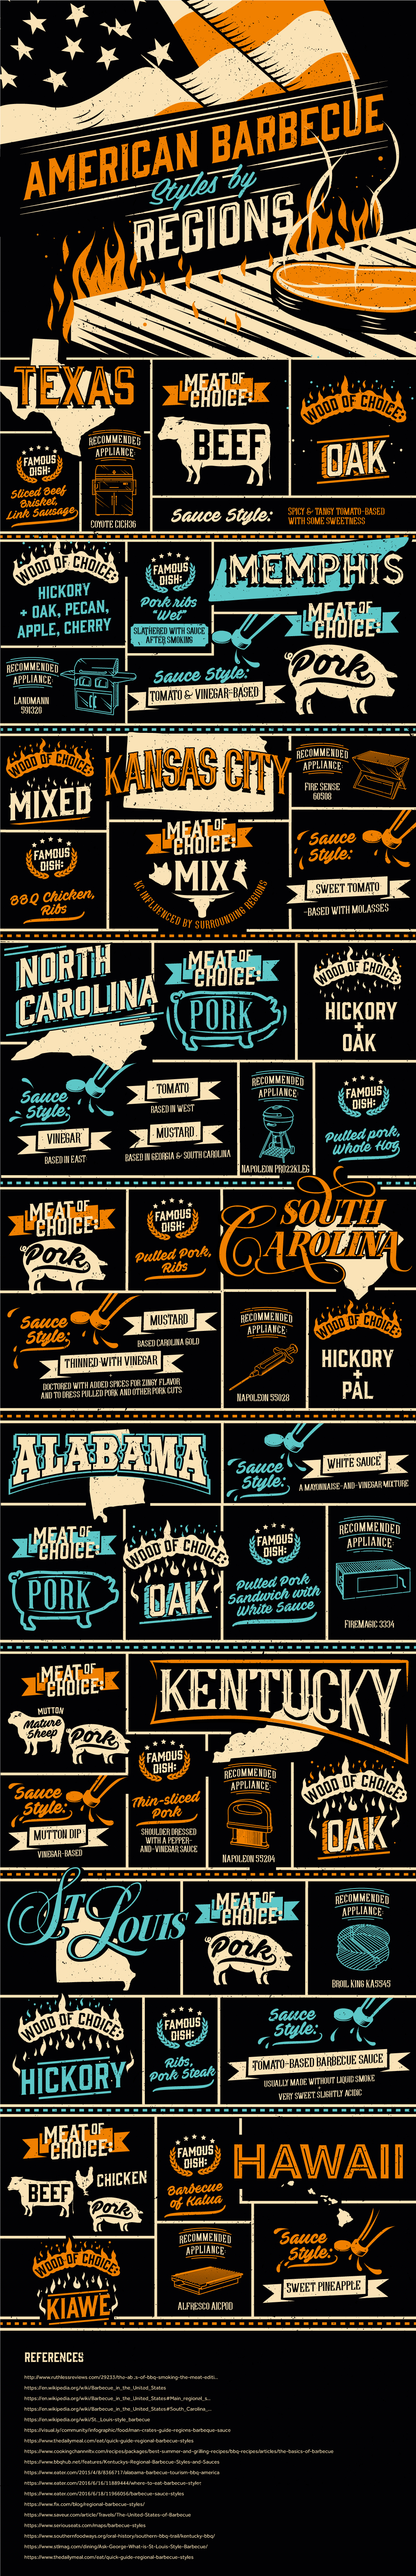 Lip-Smacking Barbeque Styles and Recipes from Across America - Infographic